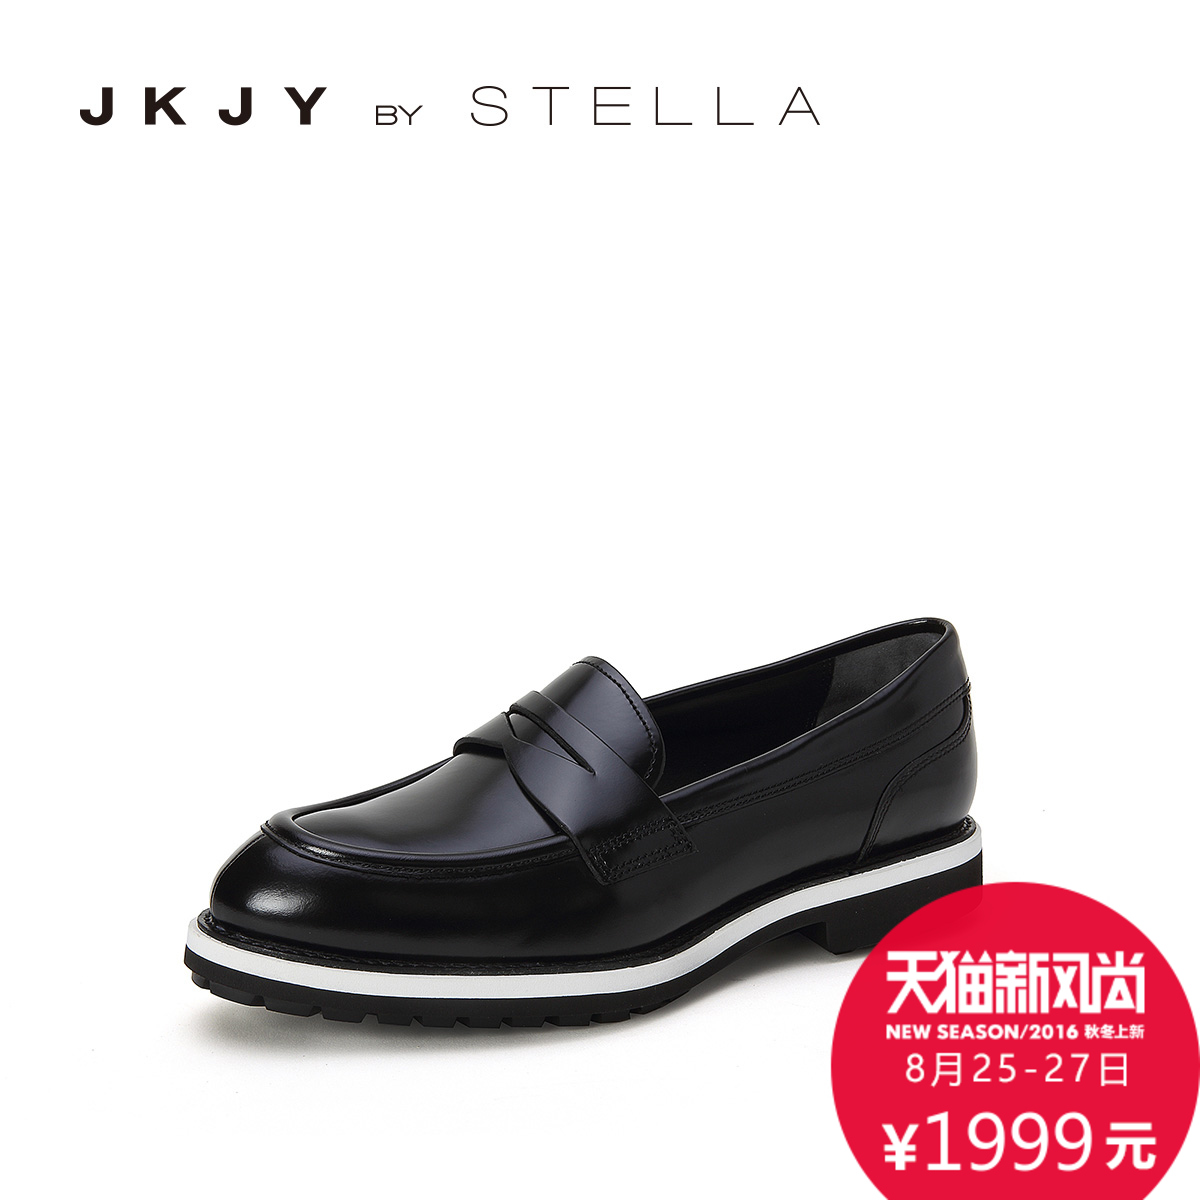 Jkjy by STELLA2016 JG1D1LMH869 new ms. leather shoes flat shoes spring and summer